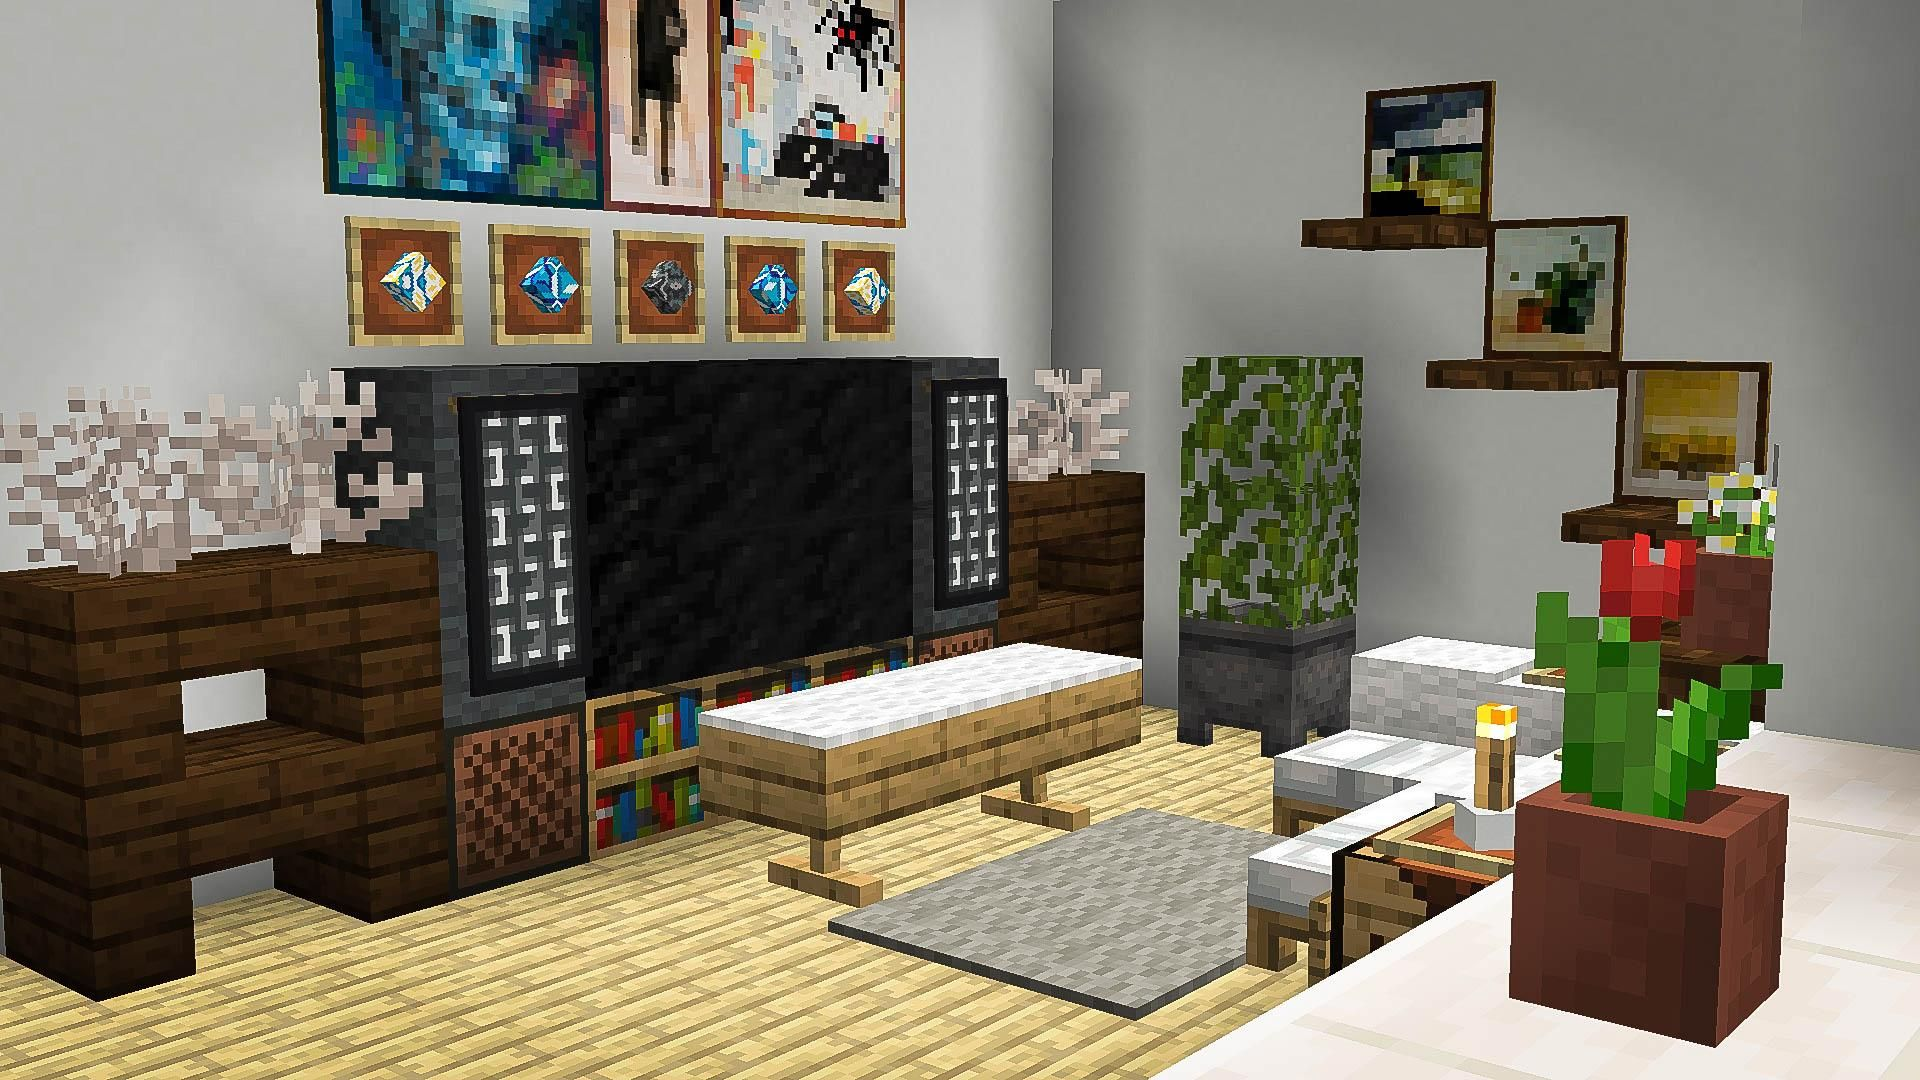 A Bright Living Room Minecraft Minecraft Room Decor Minecraft Interior Design Living Room In Minecraft